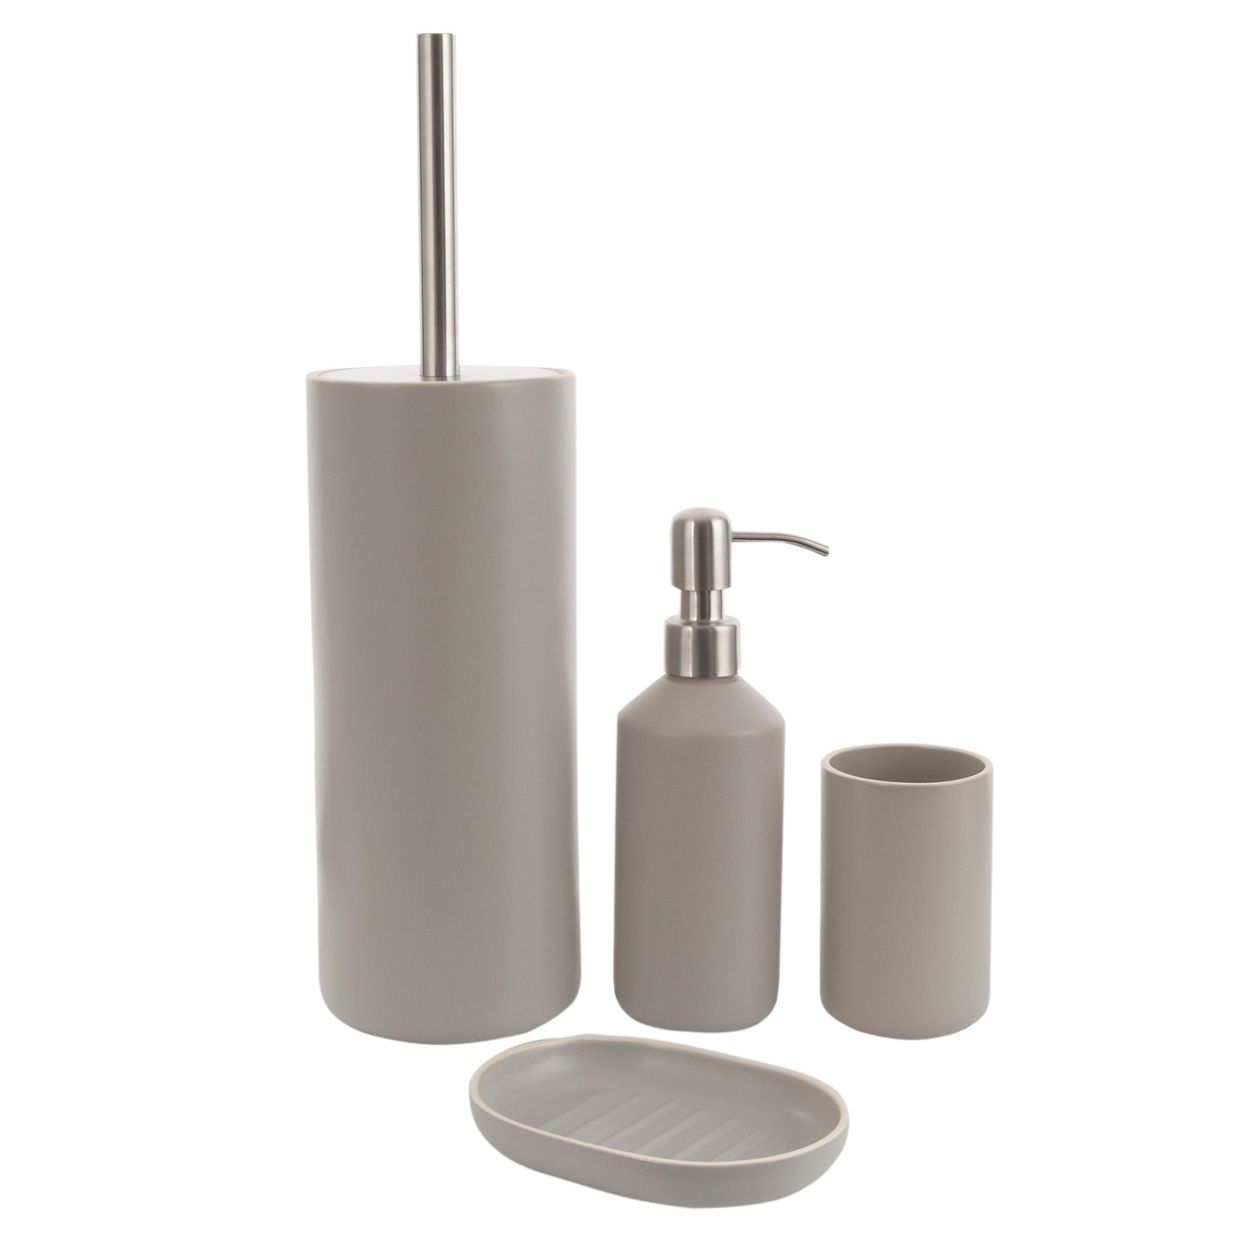 This Grey 'Country Modern' Bathroom Accessory Range From J By Jasper Conran Is A Sleek And